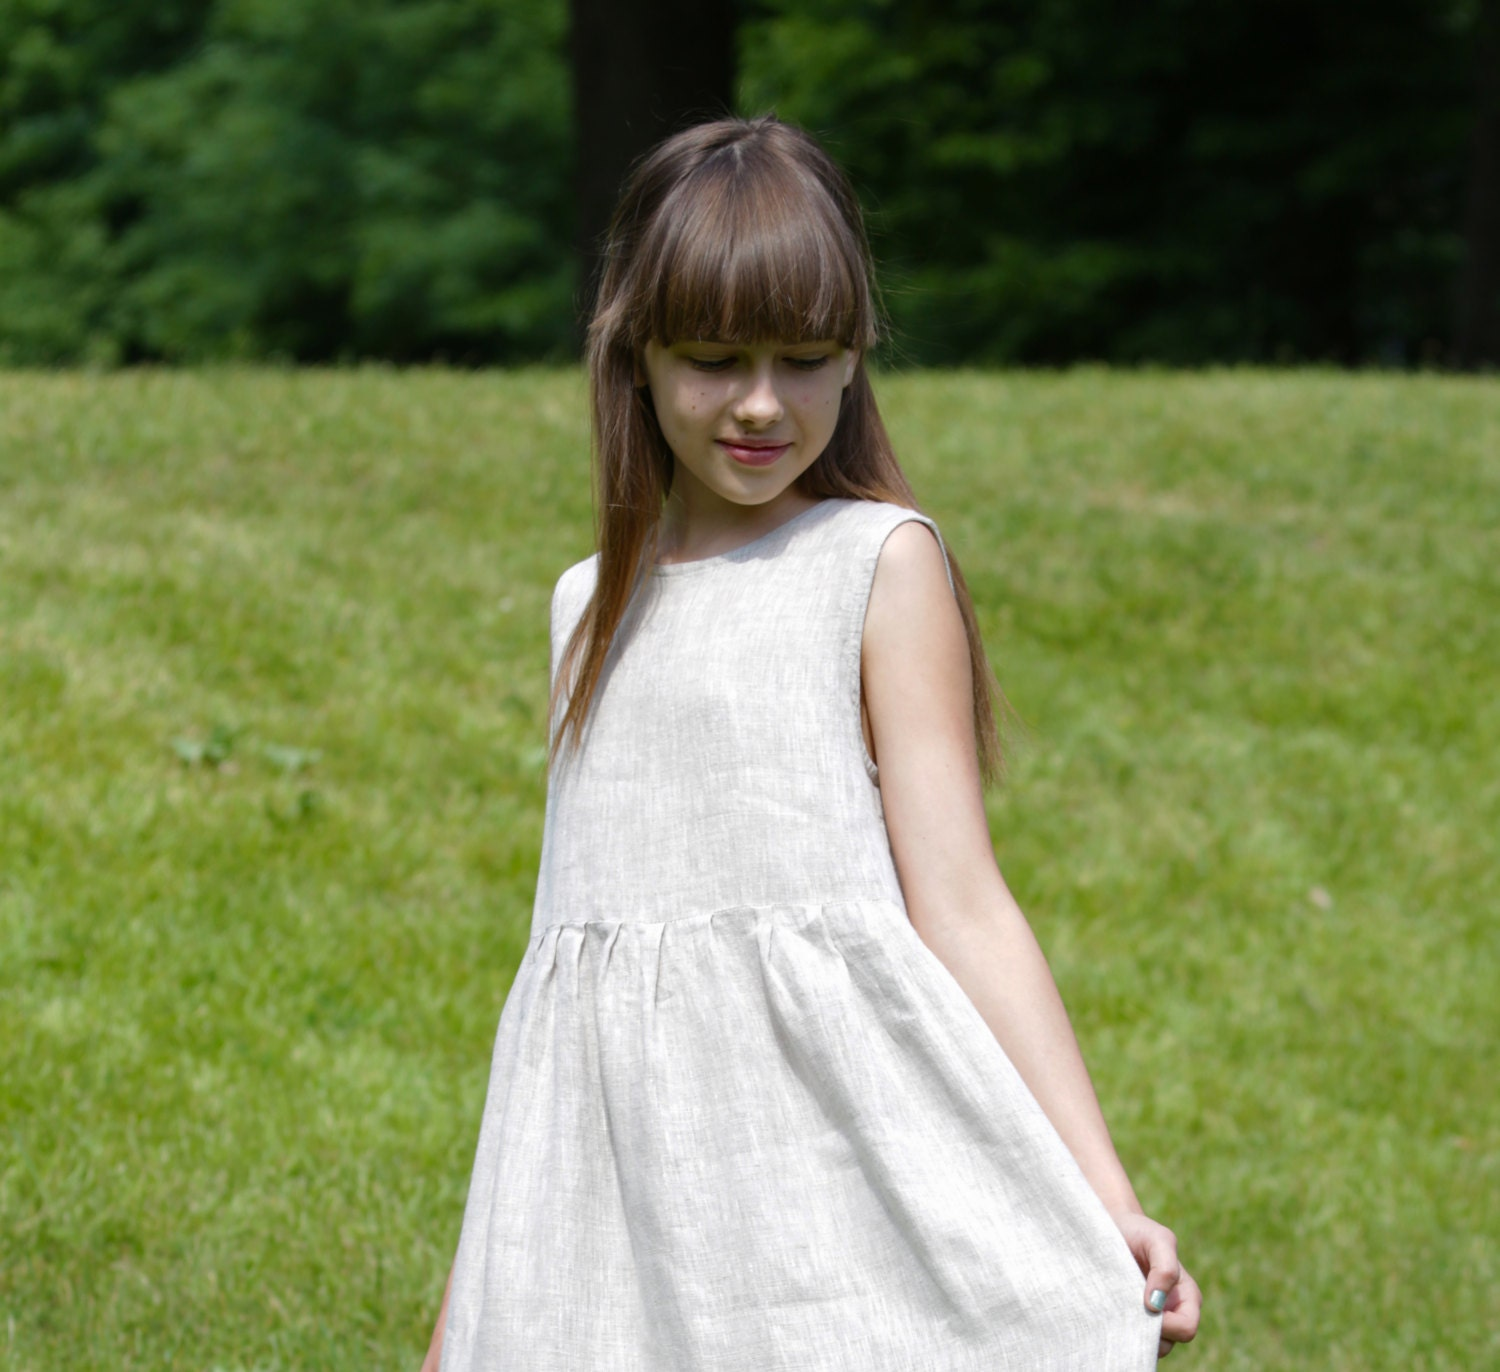 LINEN GIRLSu0027 DRESS Flower Girl Dresses Baby Girlsu0027 Clothing Dresses Weddings  100% Linen Girlu0027s Dress